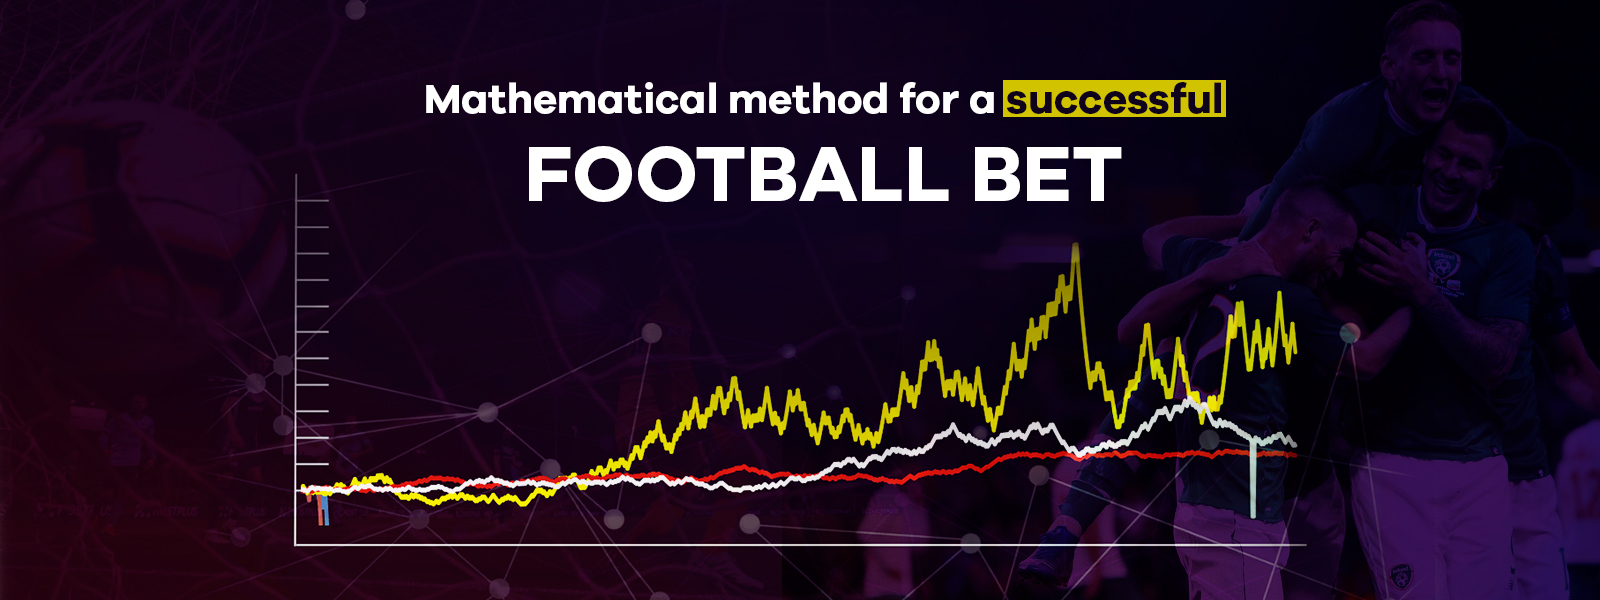 Mathematics and Statistics in Successful Football Bet